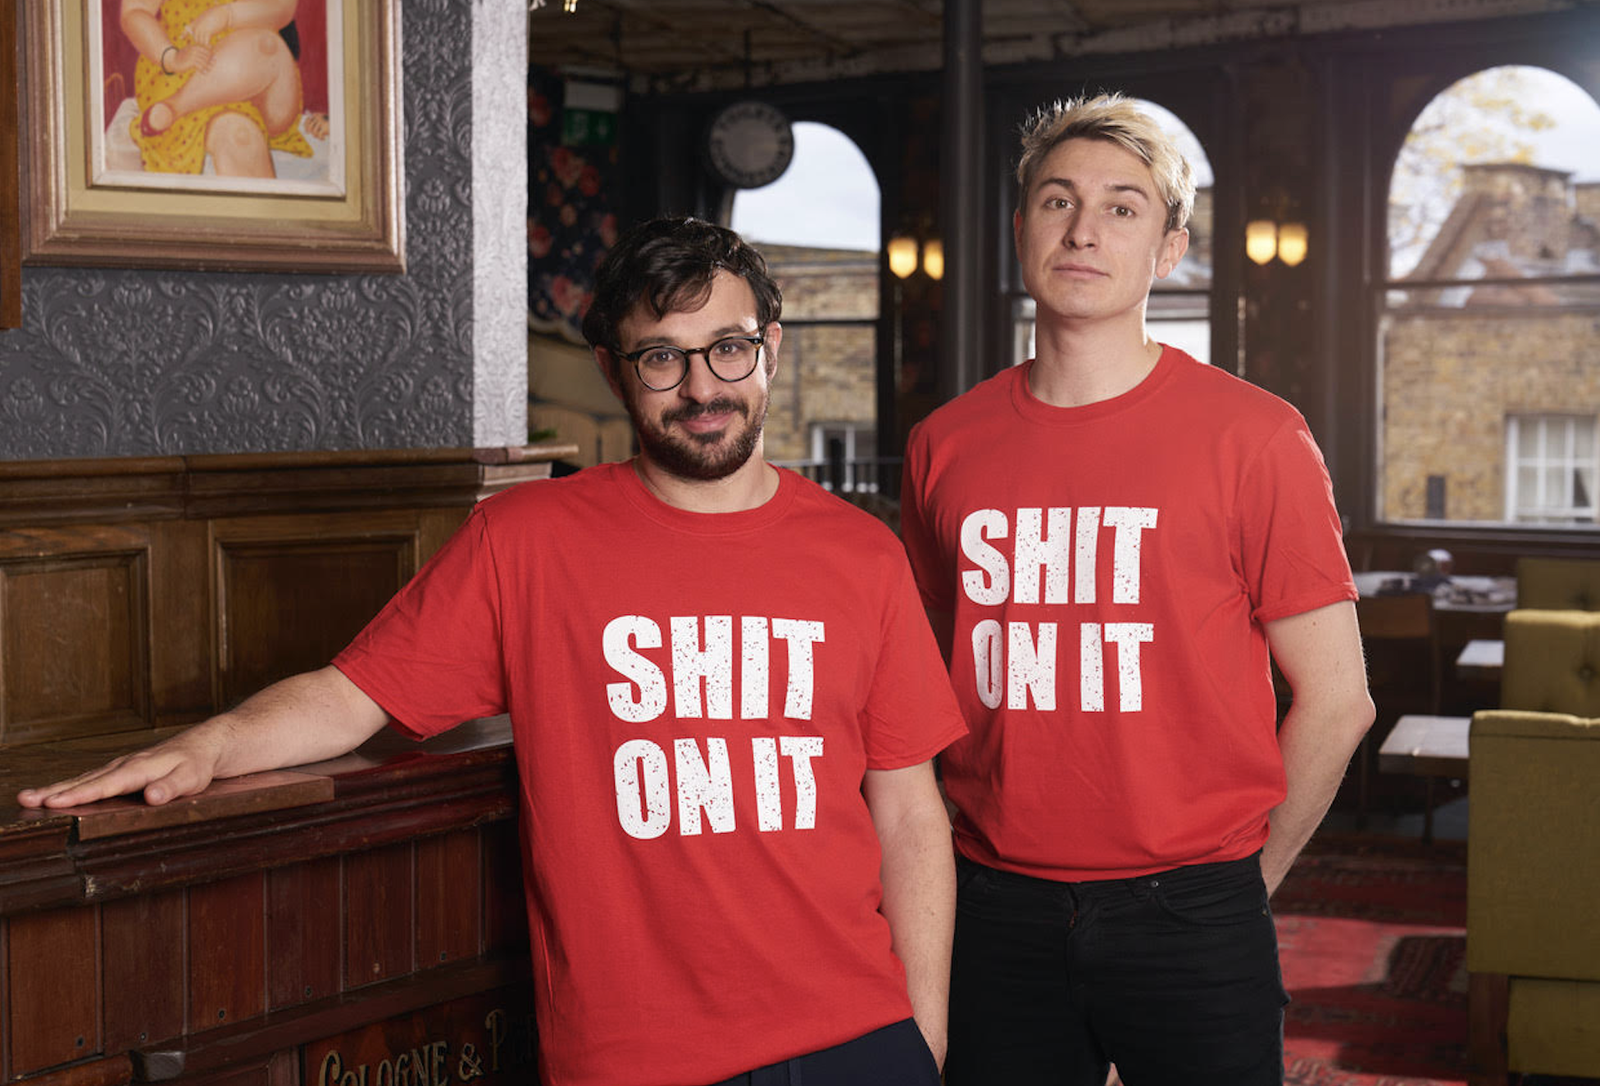 Channel 4's Friday Night Dinner is getting its own clothing line... because why not? #fridaynightdinner